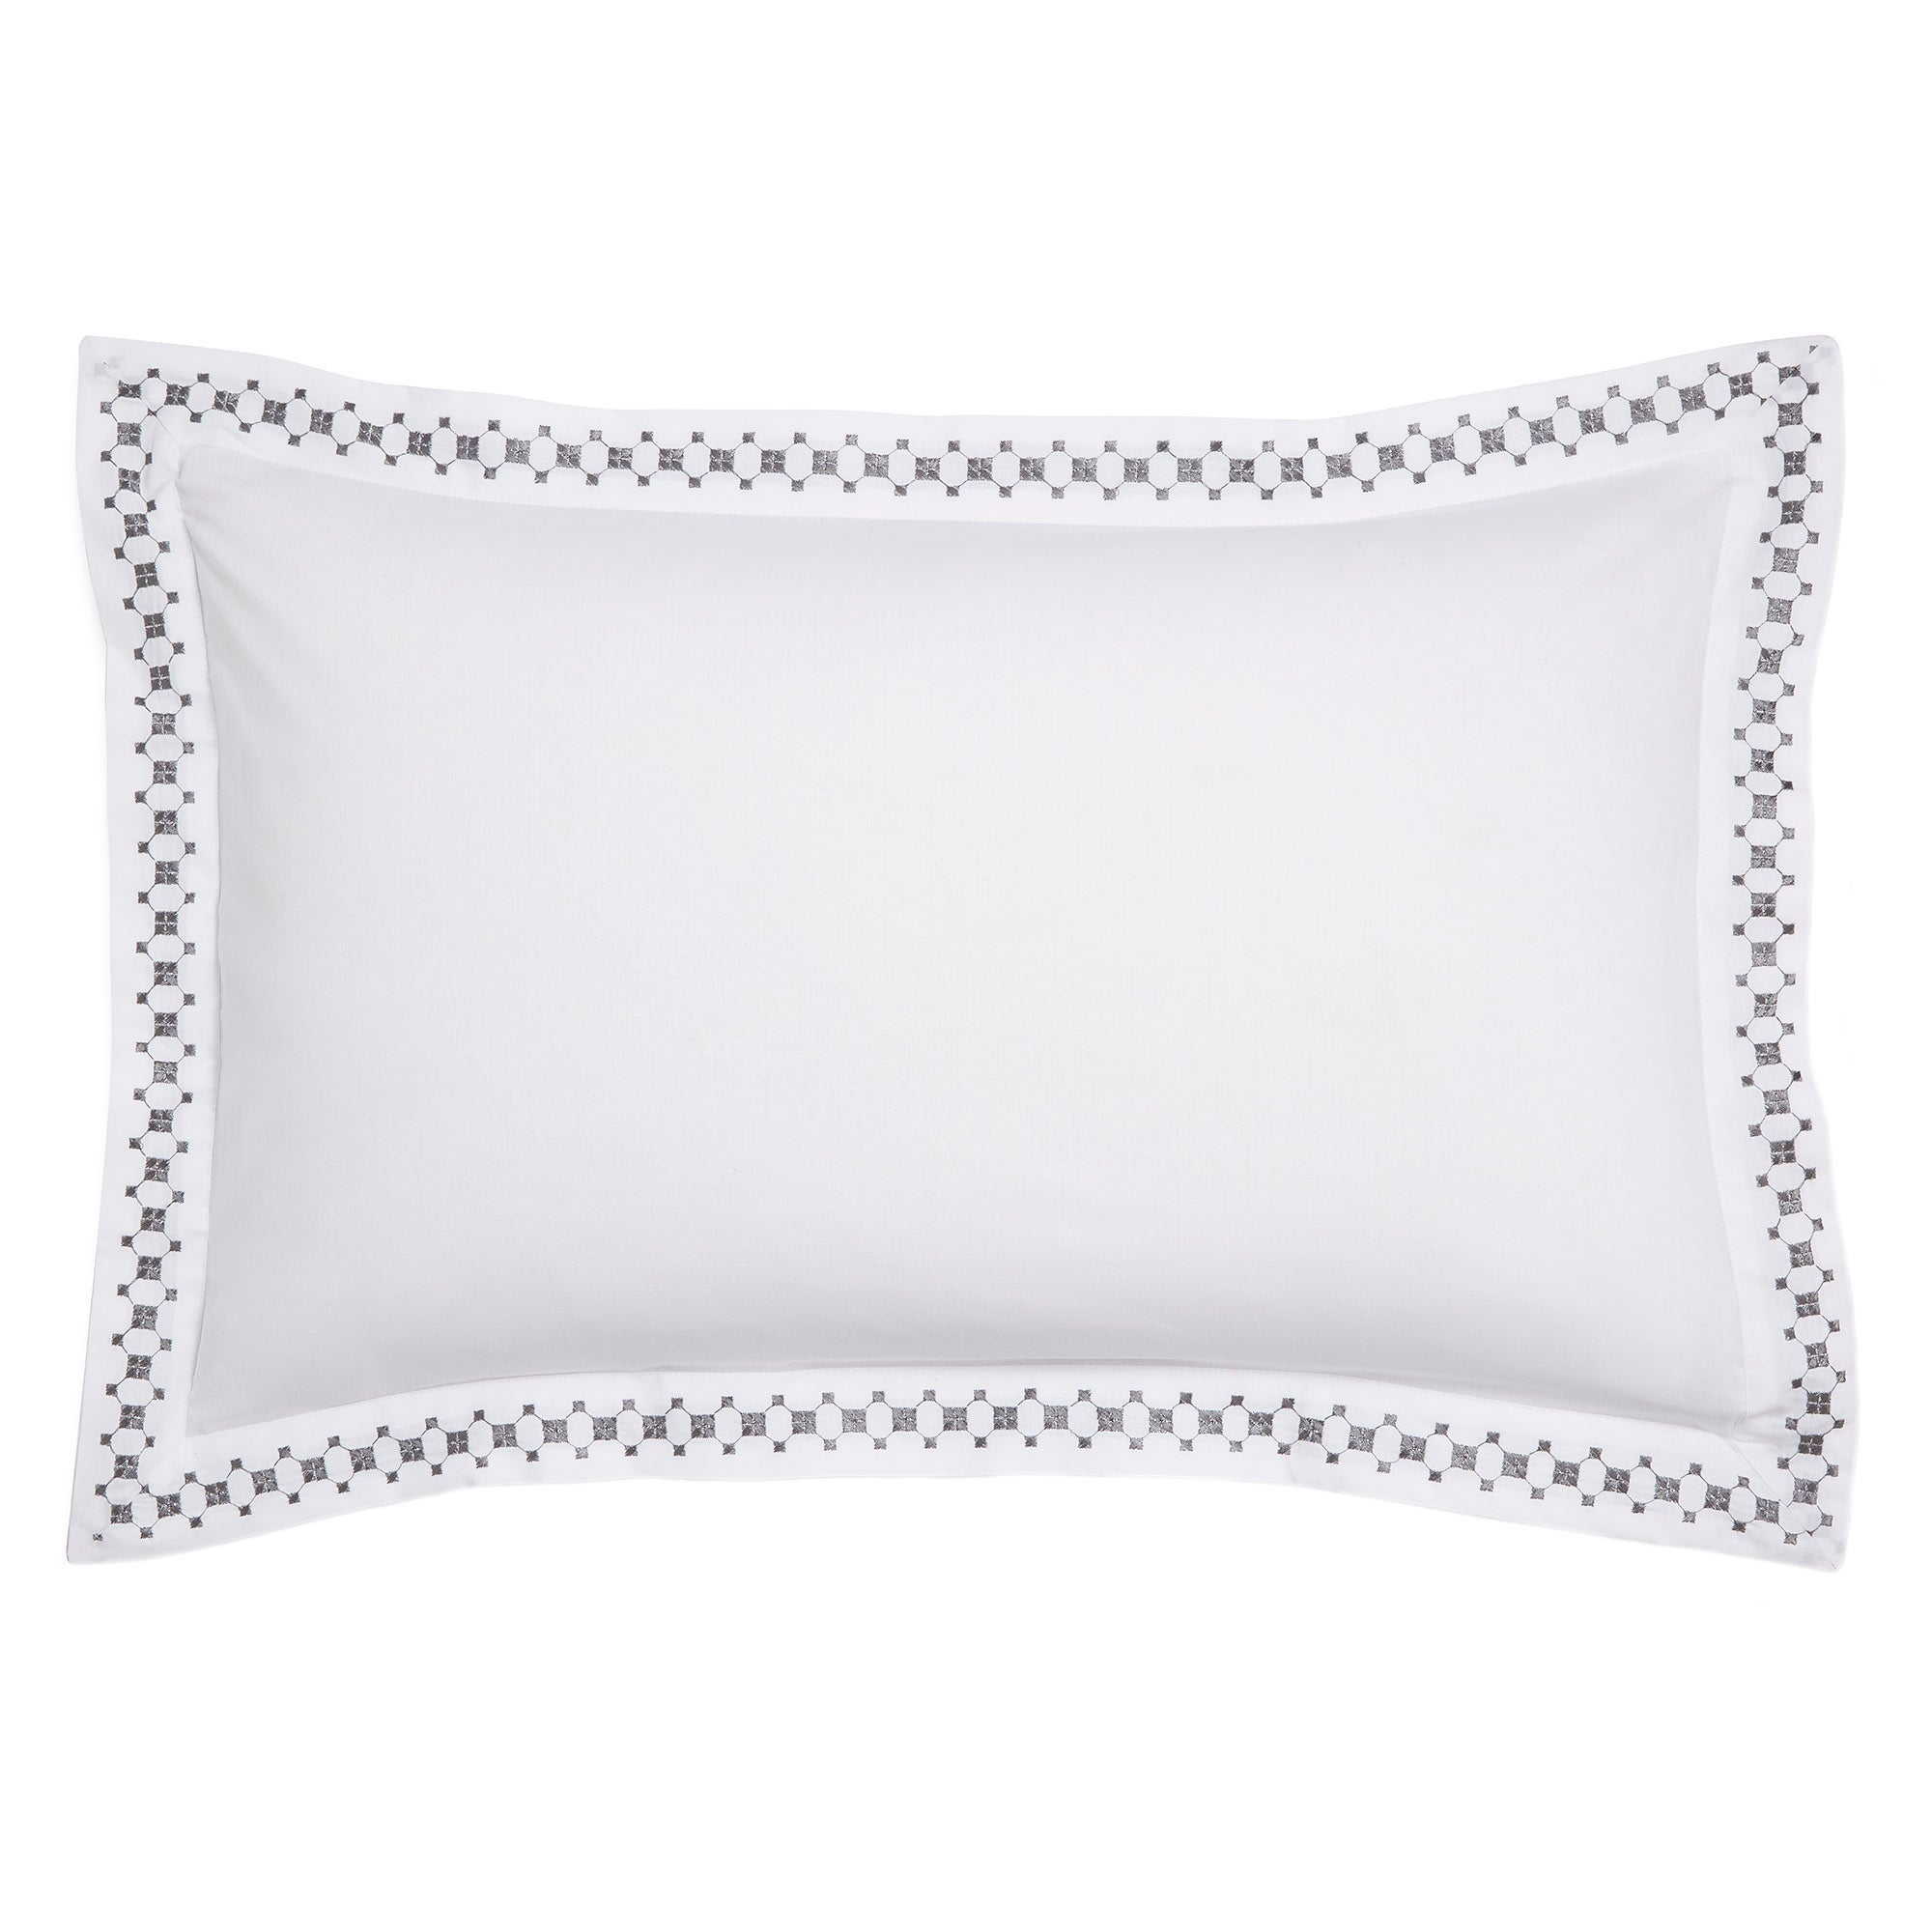 Image of Ameya Grey Oxford Pillowcase Grey